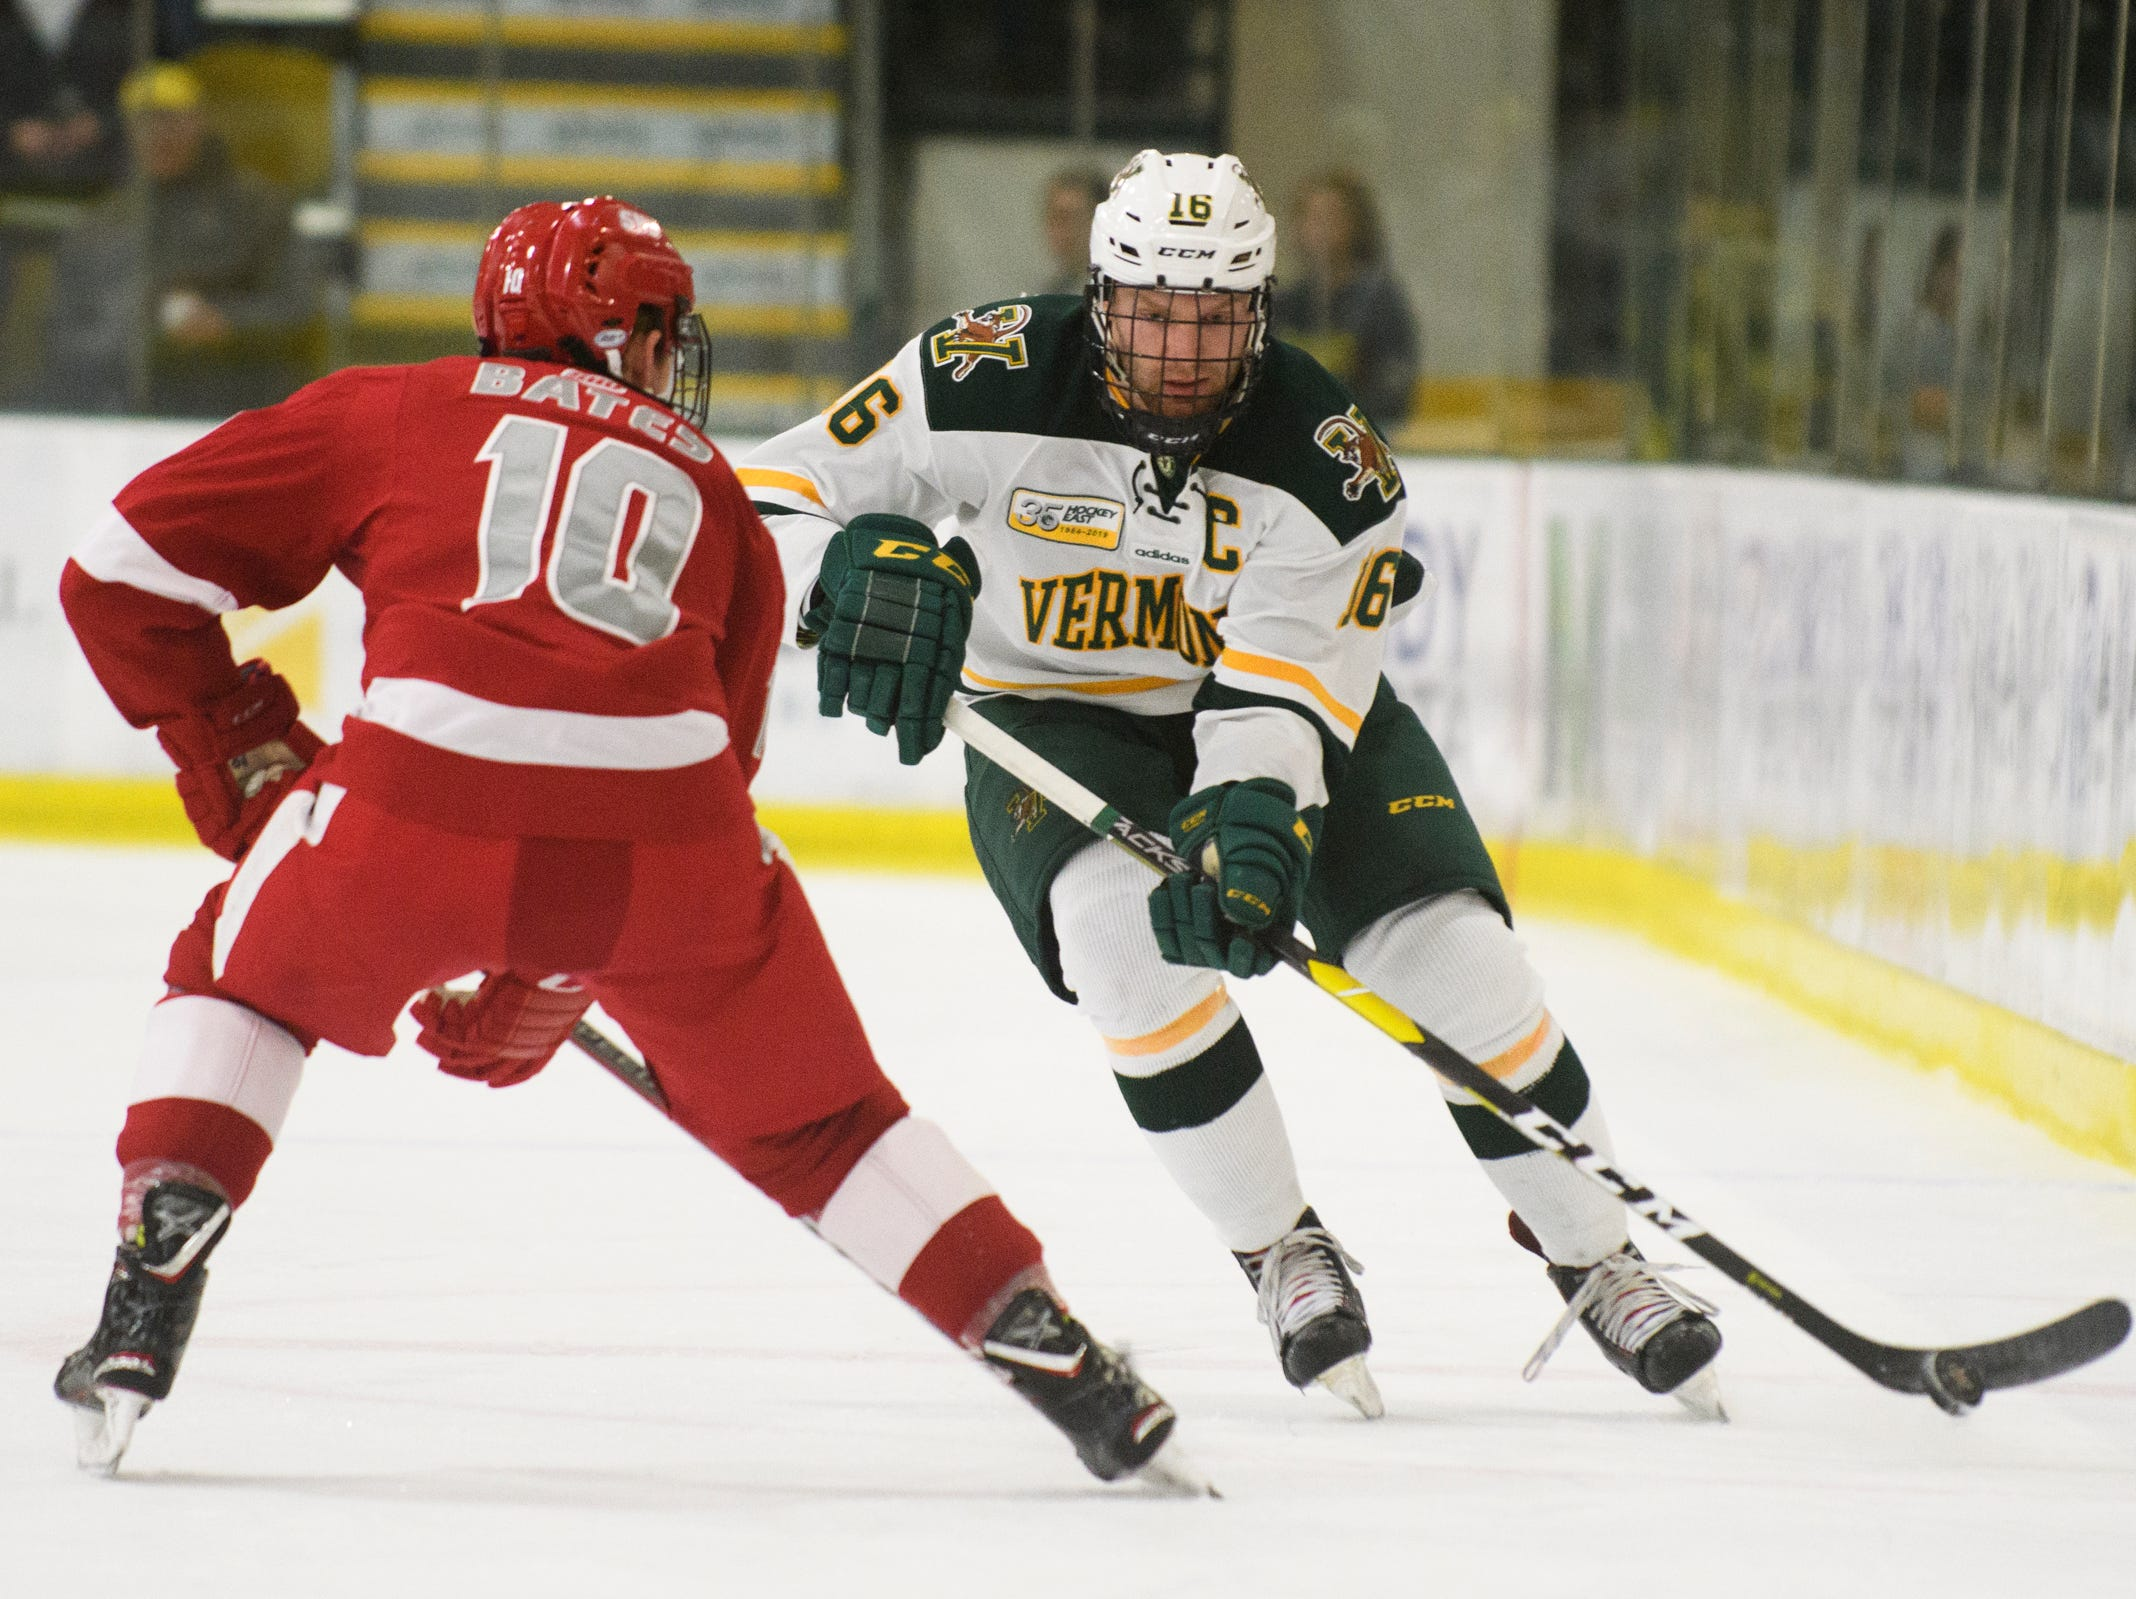 Vermont forward Derek Lodermeier (16) skates down the ice with the puck during the men's hockey game between the Sacred Heart Pioneers and the Vermont Catamounts at Gutterson Field House on Friday night January 4, 2019 in Burlington.